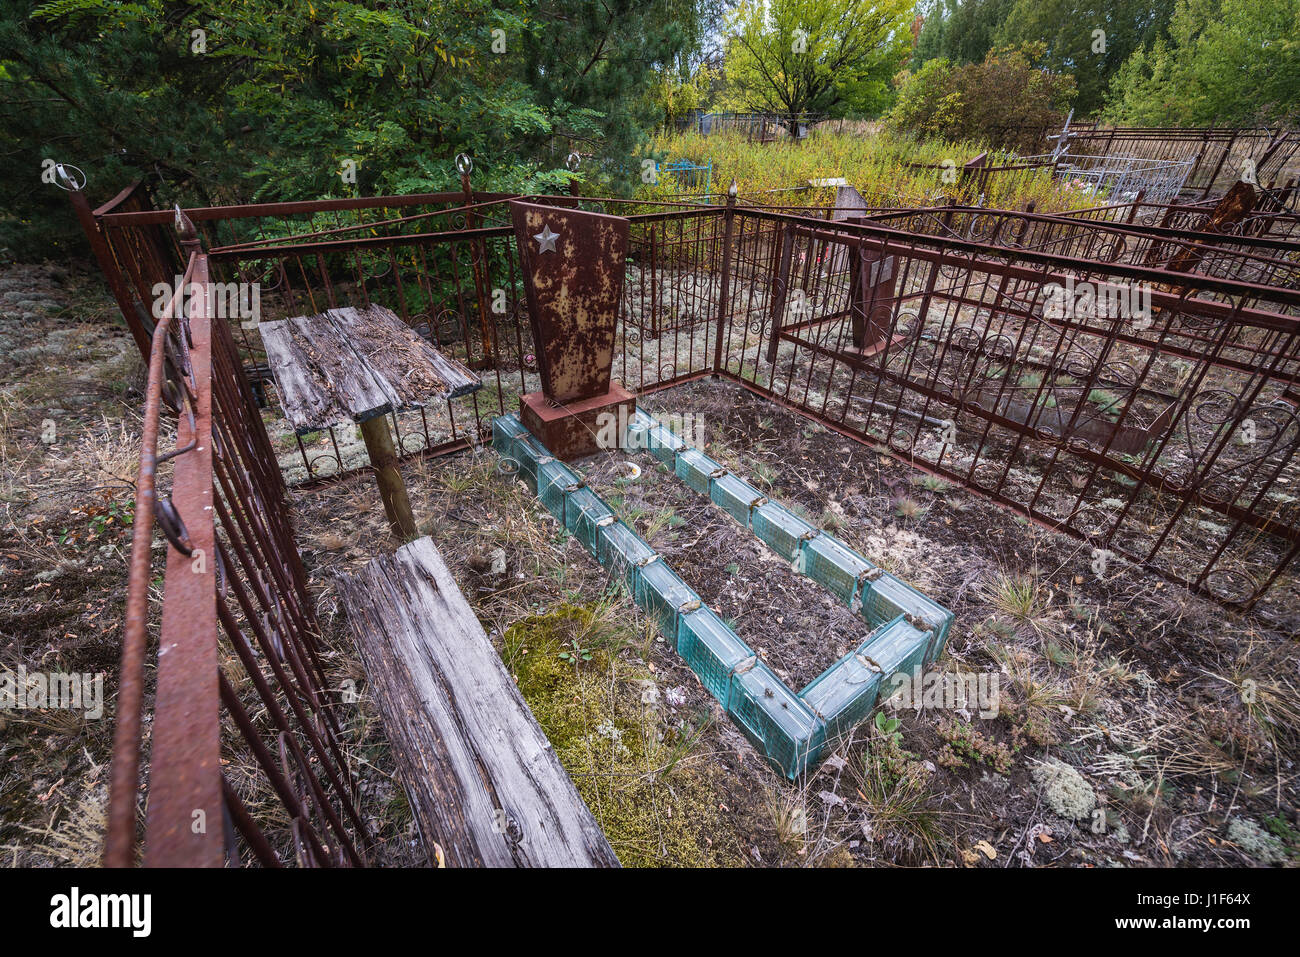 Cemetery in Pripyat ghost city of Chernobyl Nuclear Power Plant Zone of Alienation around nuclear reactor disaster - Stock Image